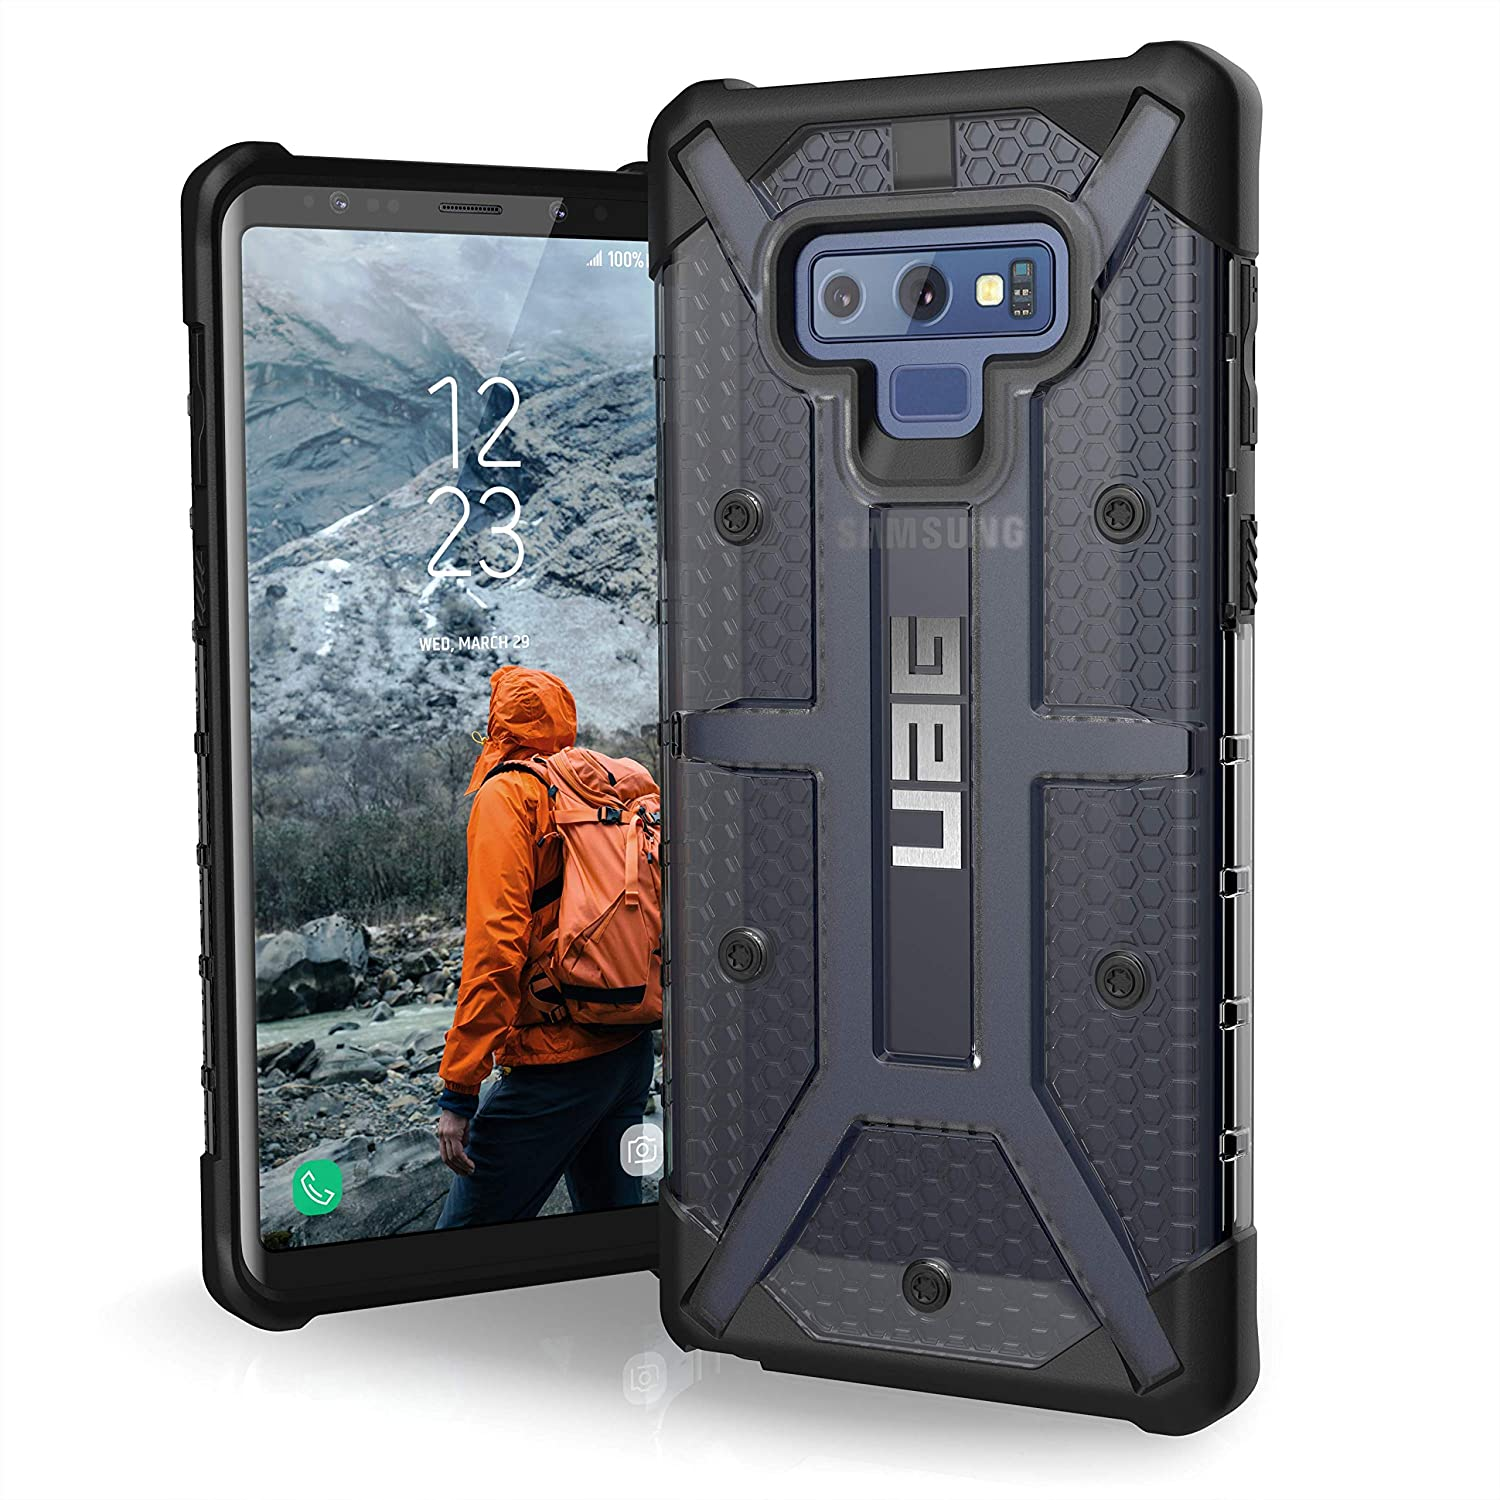 on sale f4a3c b1c2d URBAN ARMOR GEAR UAG Samsung Galaxy Note 9 Plasma Feather-Light Rugged  [Ash] Military Drop Tested Phone Case